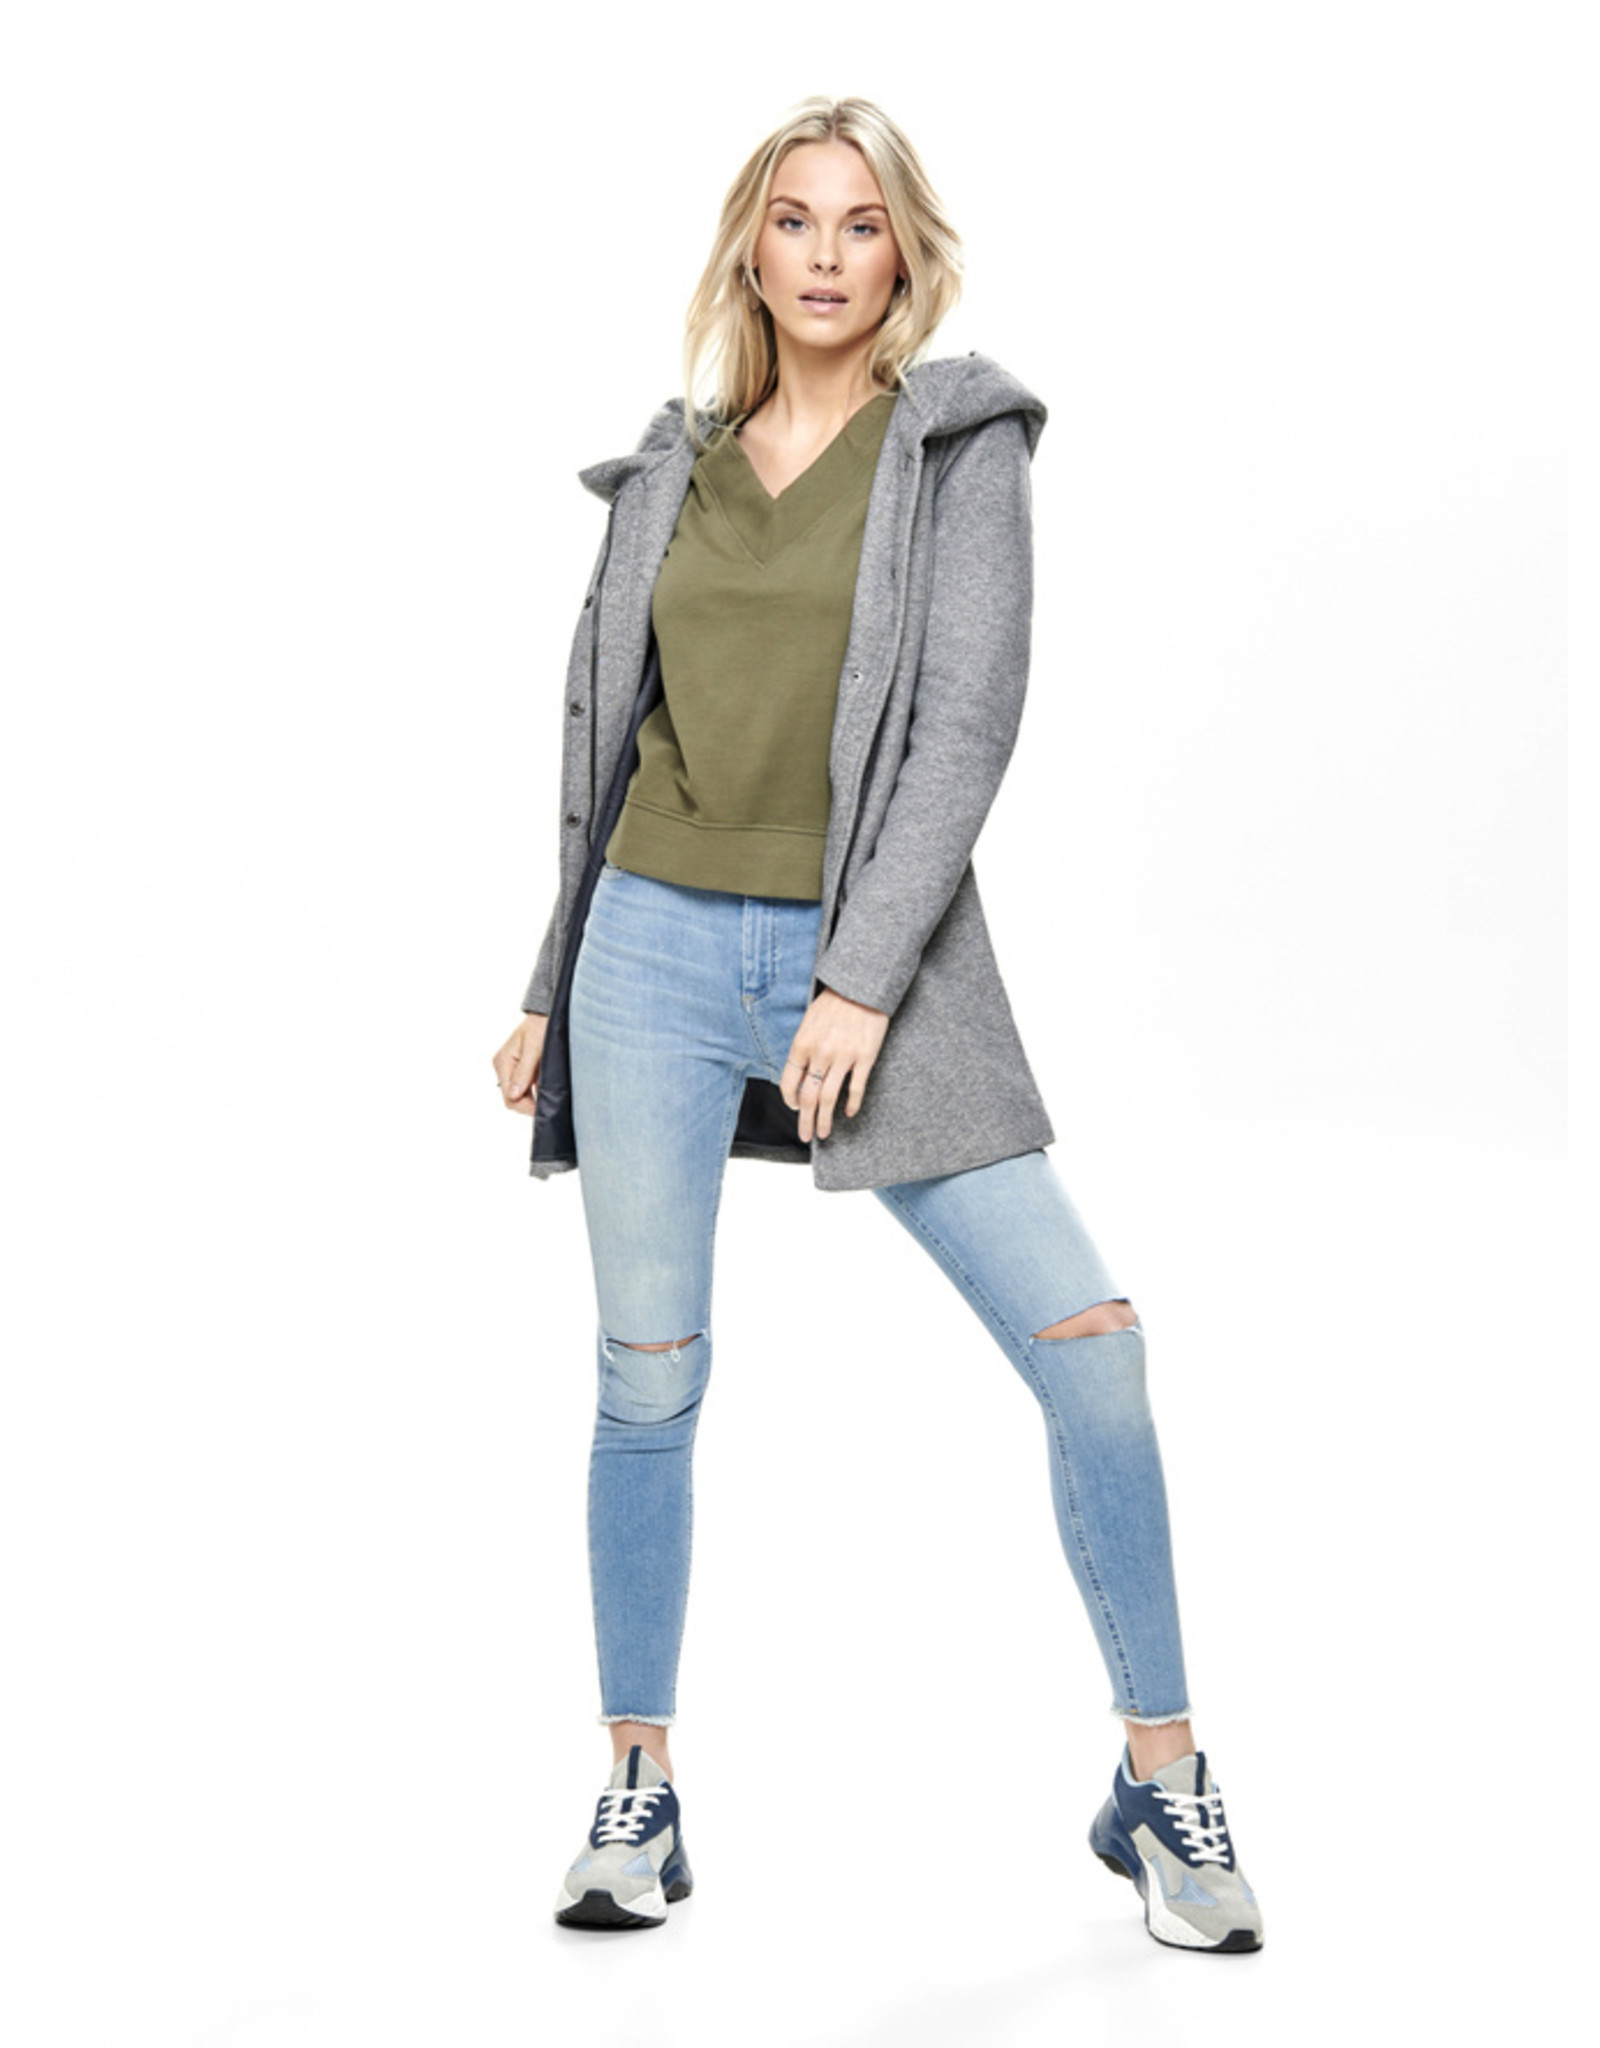 SEDONA COAT LT GREY